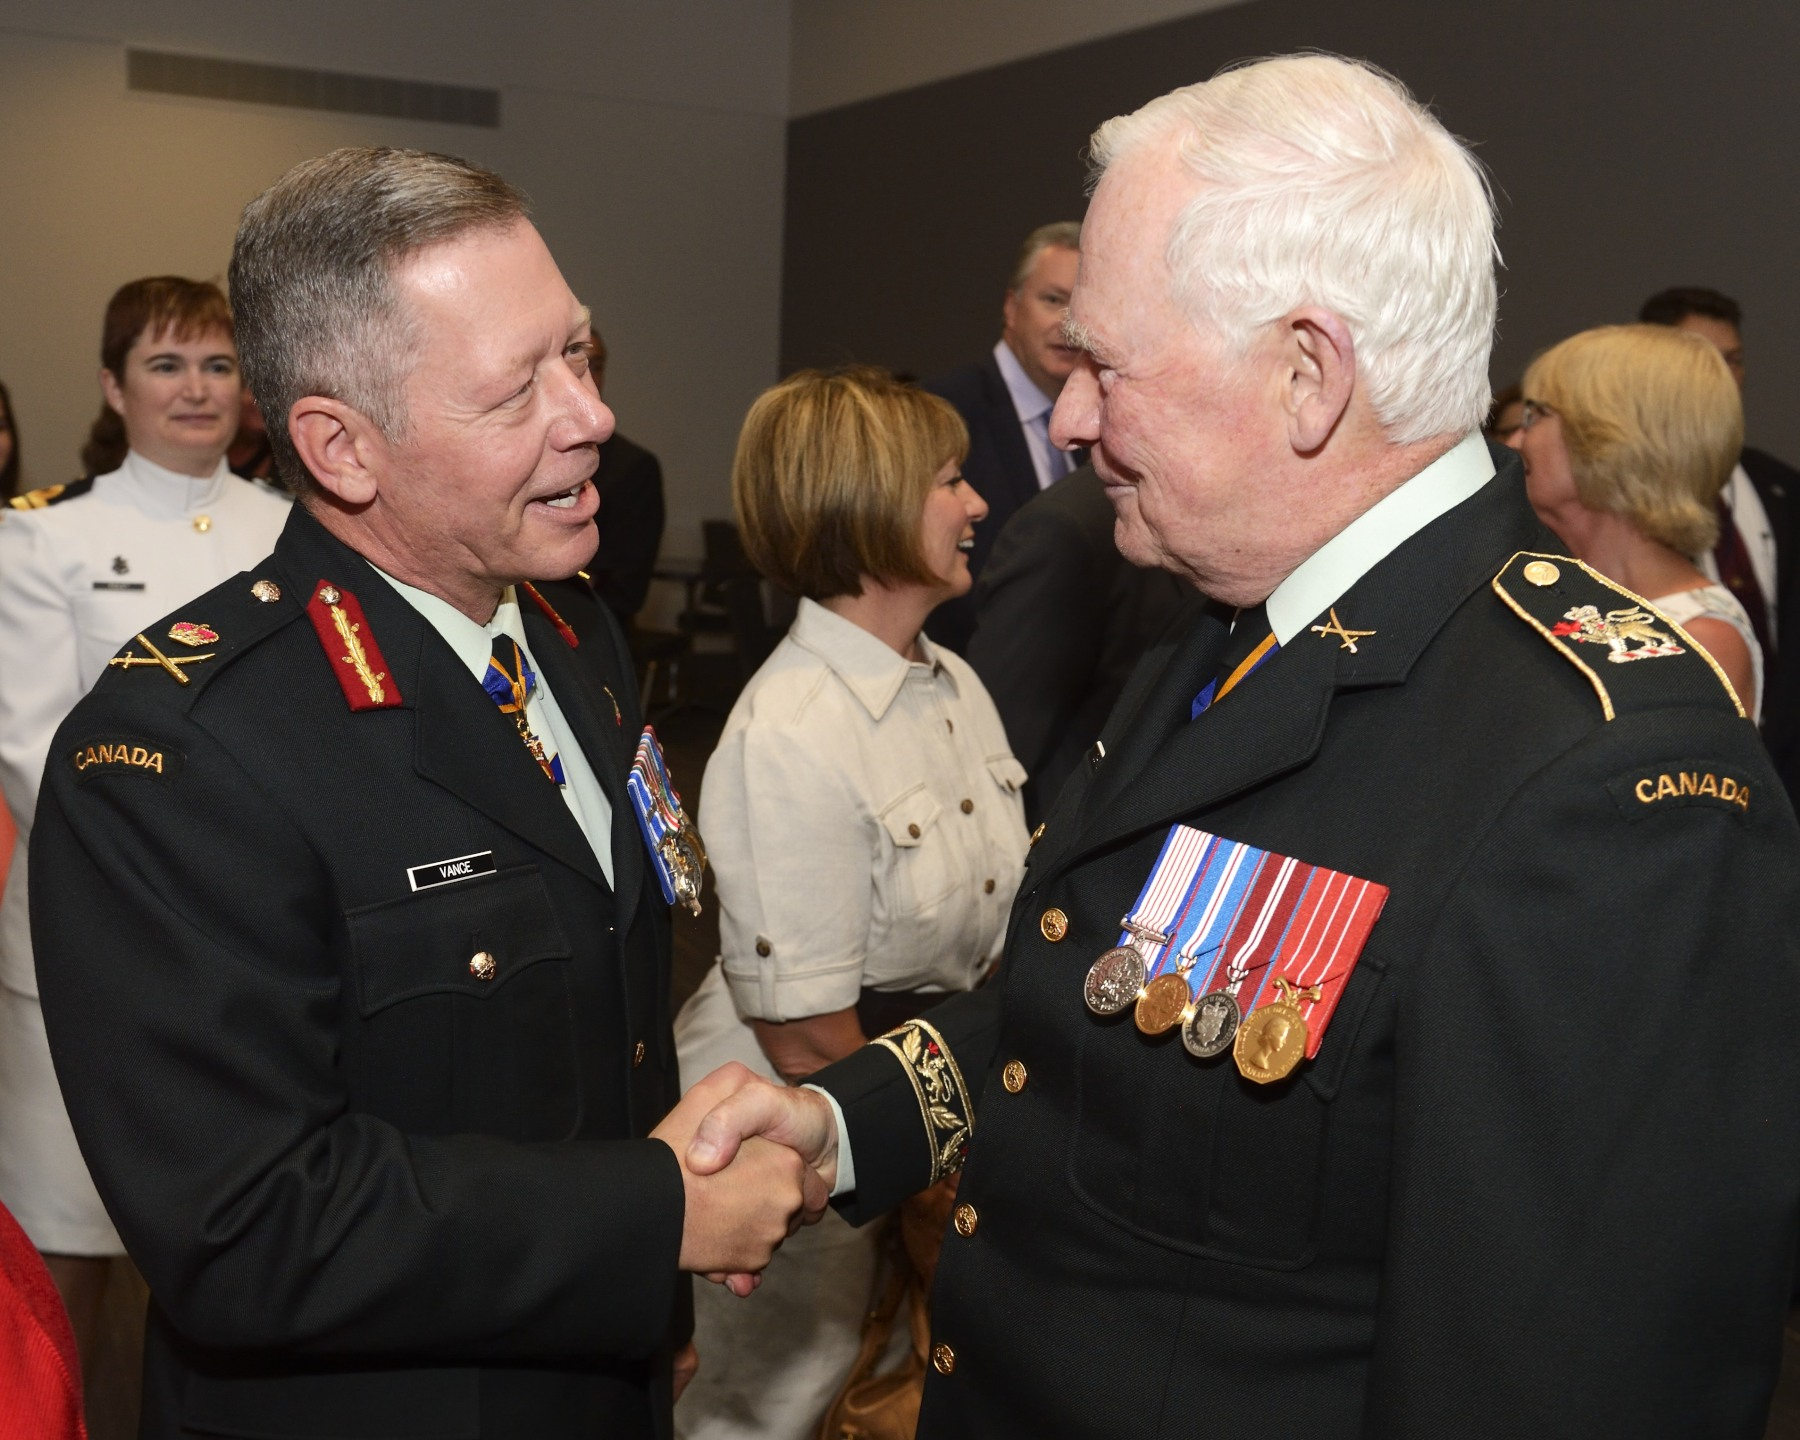 The Governor General and Commander-in-Chief of Canada presided over the ceremony marking the Change of Command of the Canadian Armed Forces from General Tom Lawson to Lieutenant-General Jonathan Vance, who has been promoted to General.